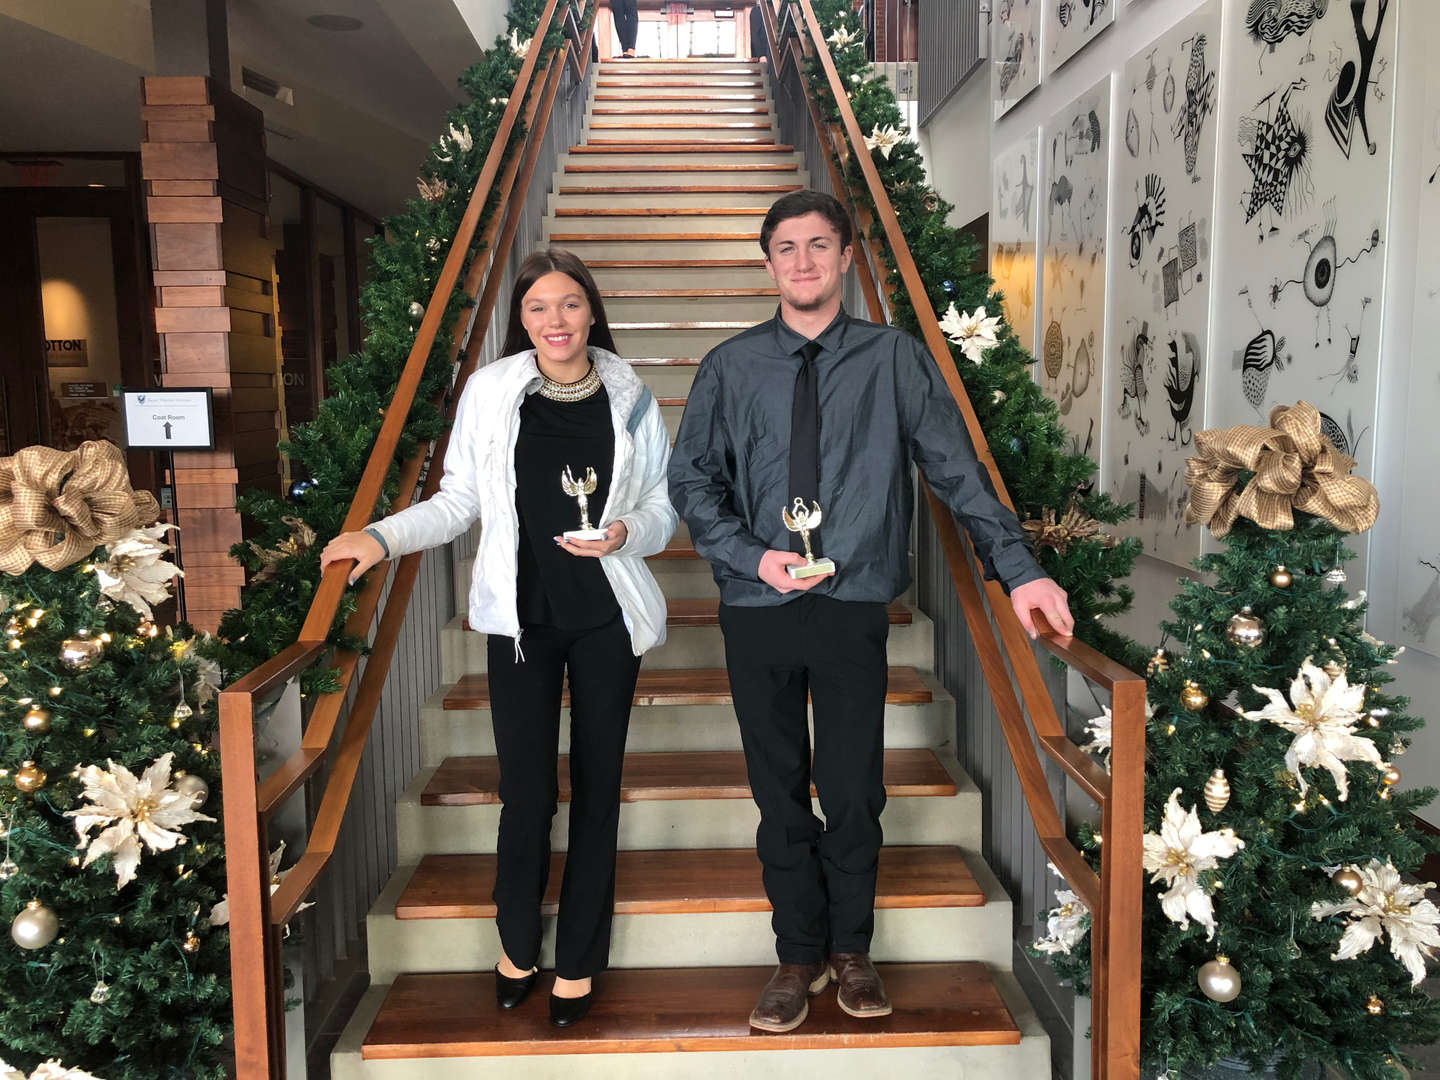 **Congratulations to FBLA Members who placed at the FBLA Regional Competition  Kohl - 3rd place Agribusiness  Gracie - 3rd place Management Decision Making